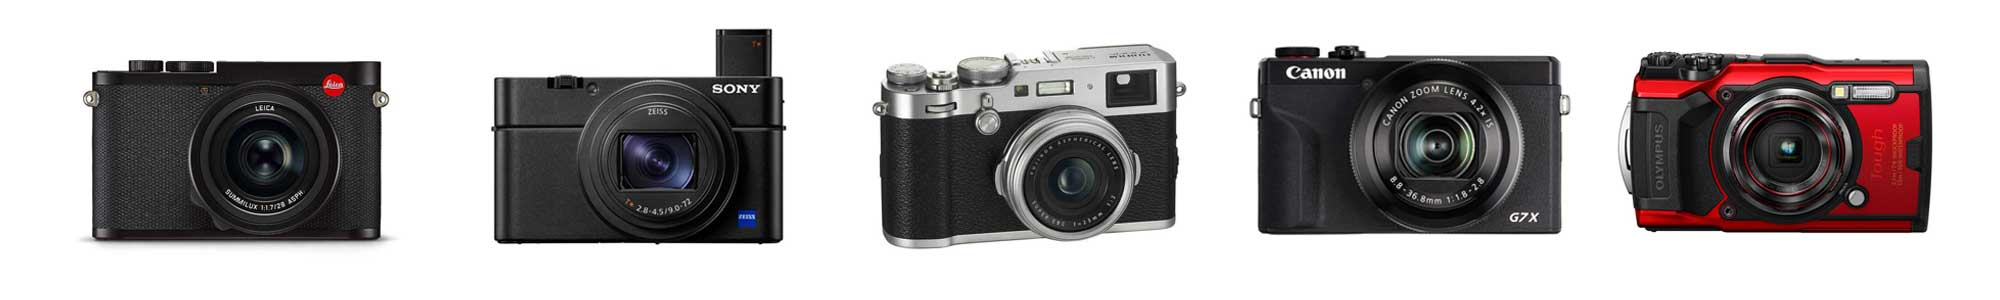 Compact cameras from Canon, Olympus, Sony, Leica and Fujifilm.